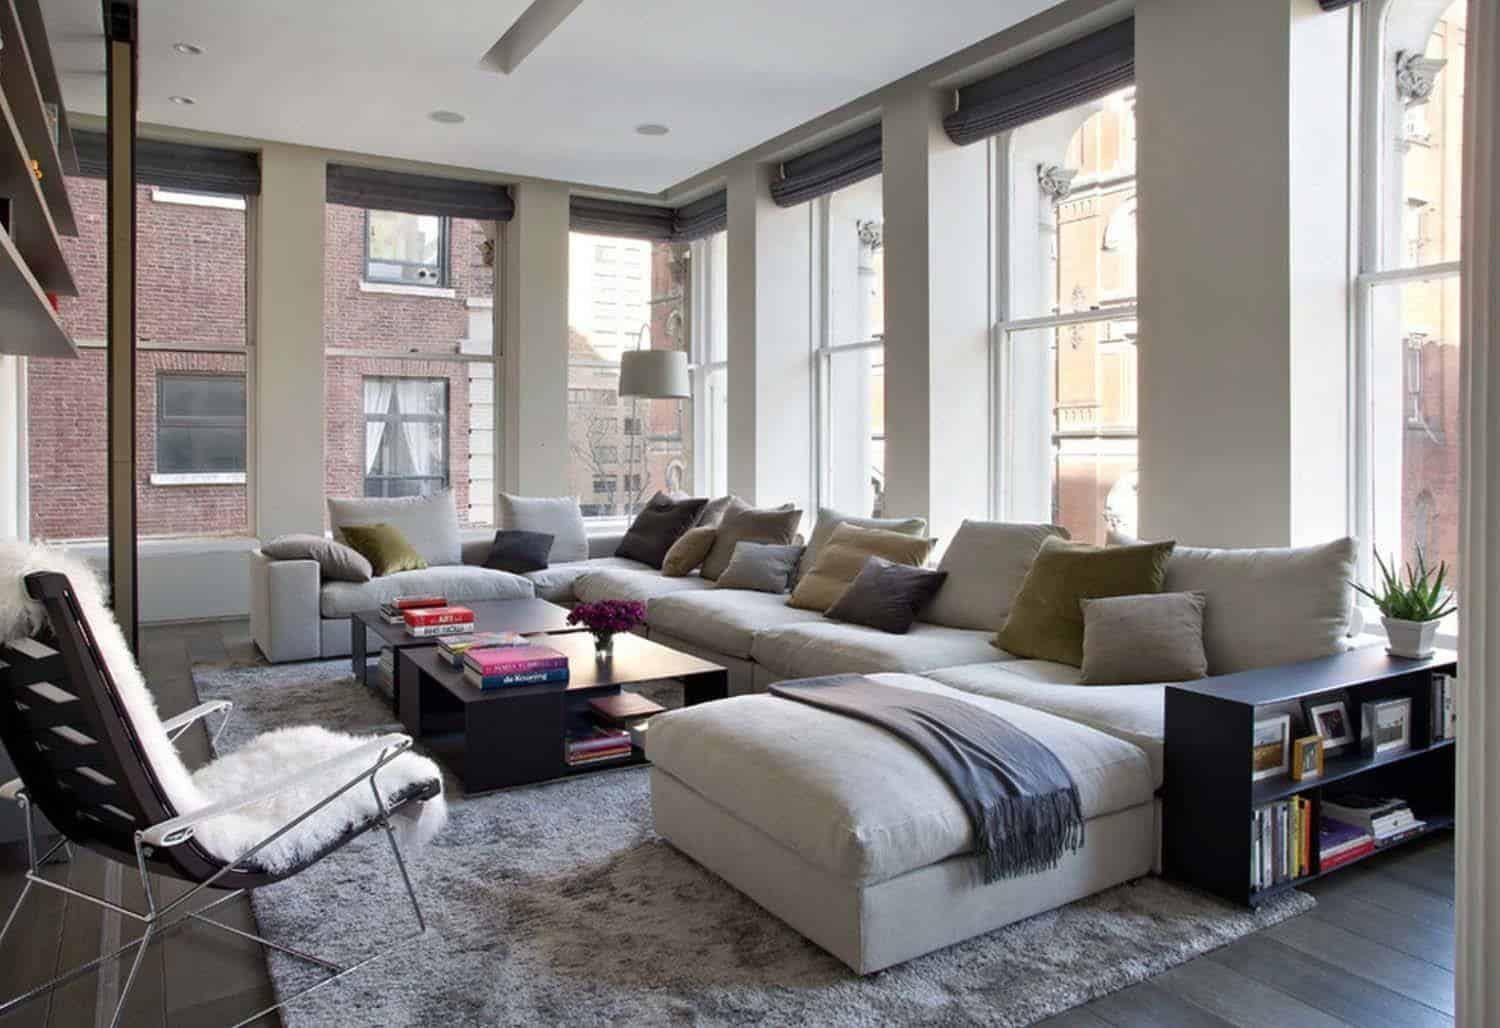 Bond-Street-Loft-Axis-Mundi-003-1-Kindesign